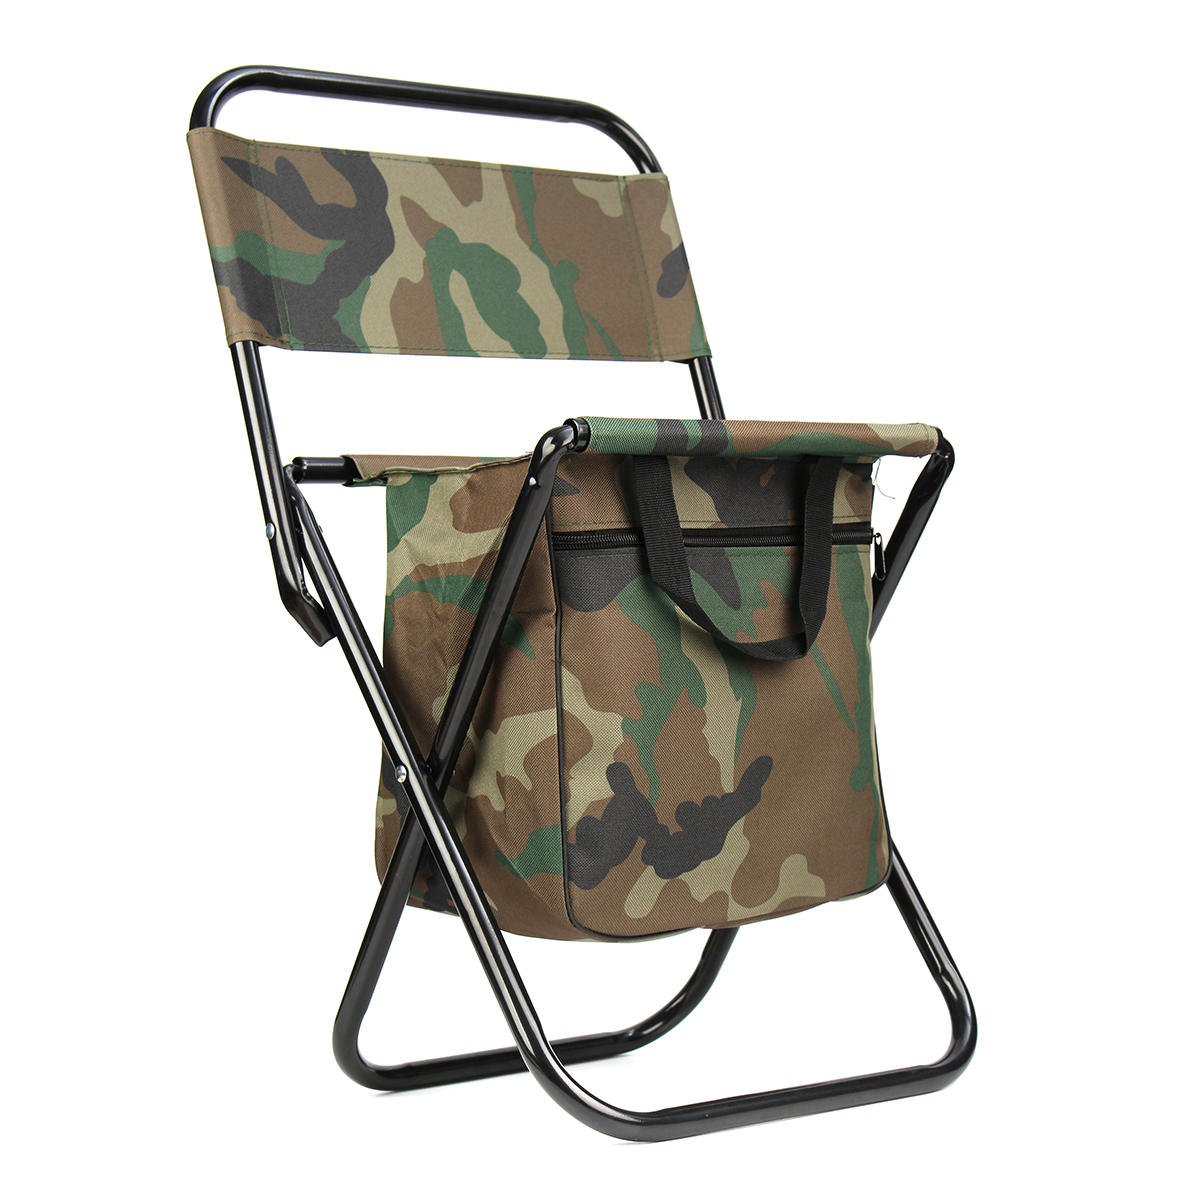 Camping Rocking Chair Camouflage Folding Chair Outdoor Camping Fishing Lightweight Foldable Chair With Bag